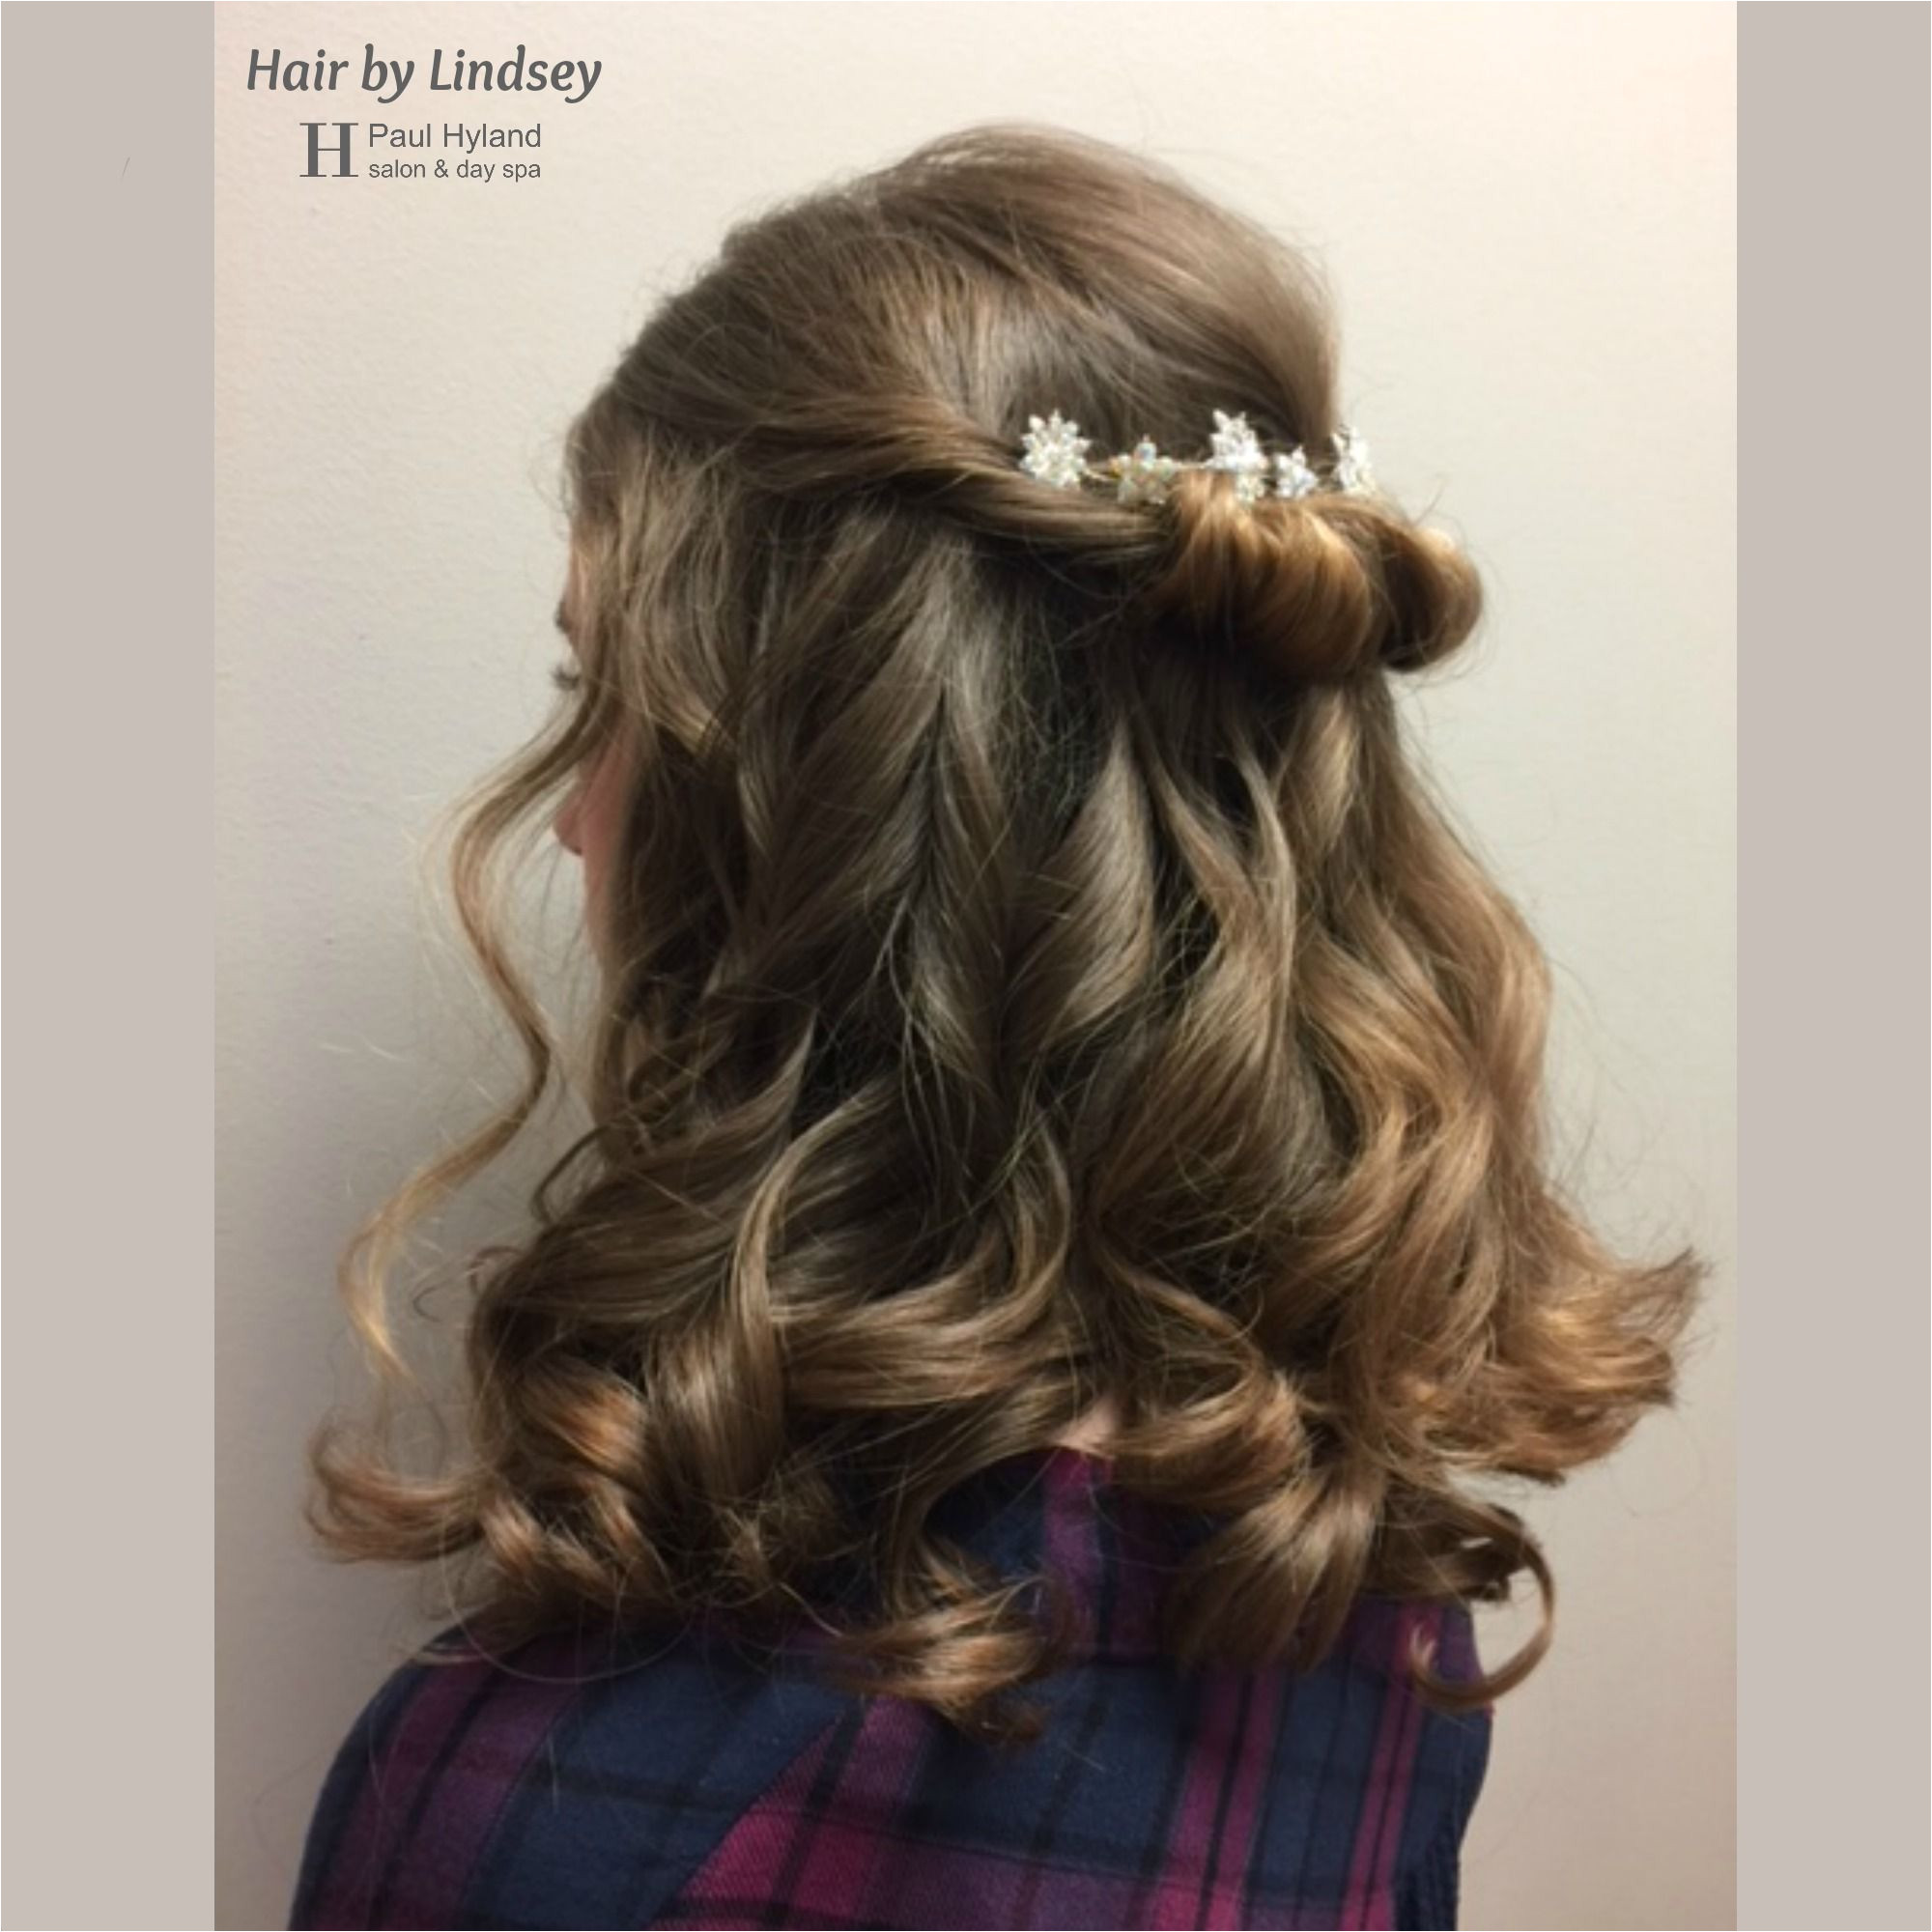 Twists and curls Pretty down style for wedding prom or other special occasions Hair by Lindsey